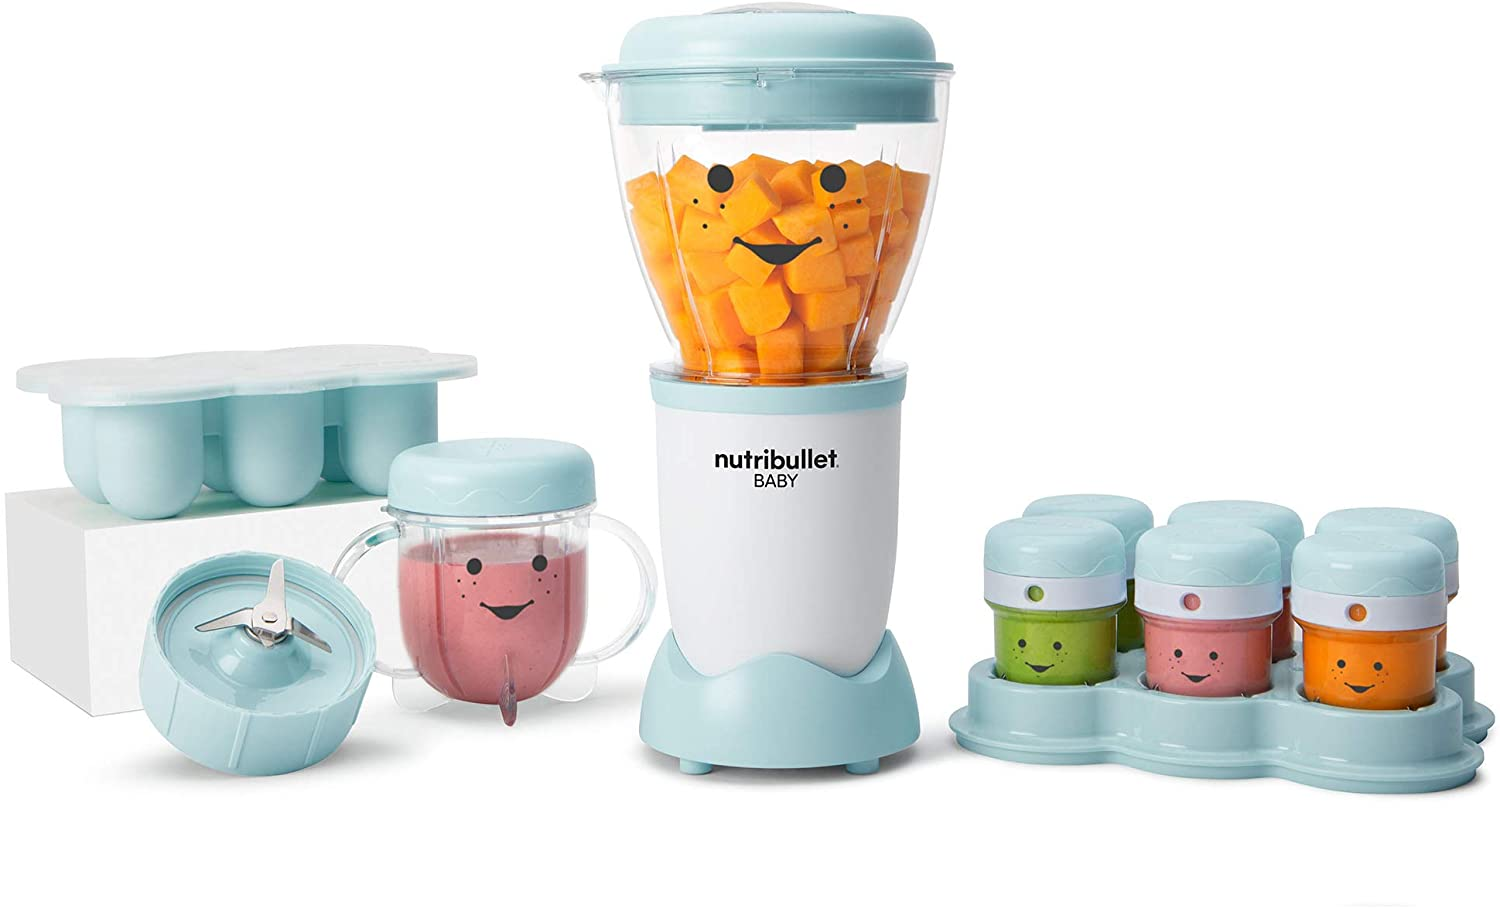 Best Overall-NutriBullet Baby Complete Food-Making System